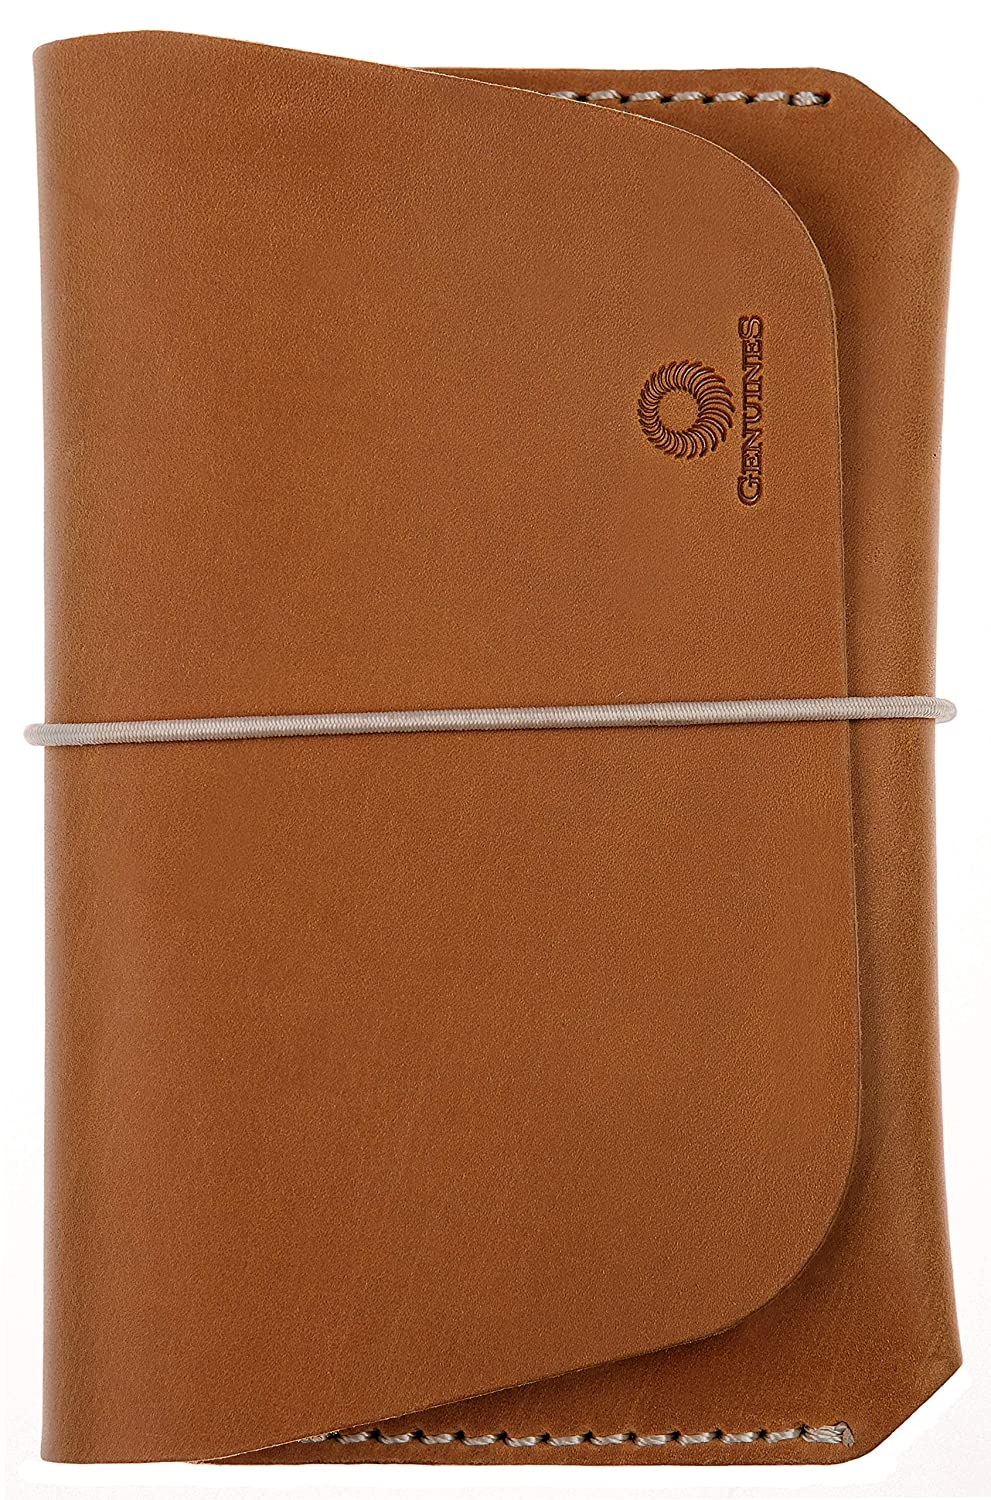 Leather Passport Holder for Men & Women - Genuines Wallet Case for 1 or 2 Passports (Cocoa brown)